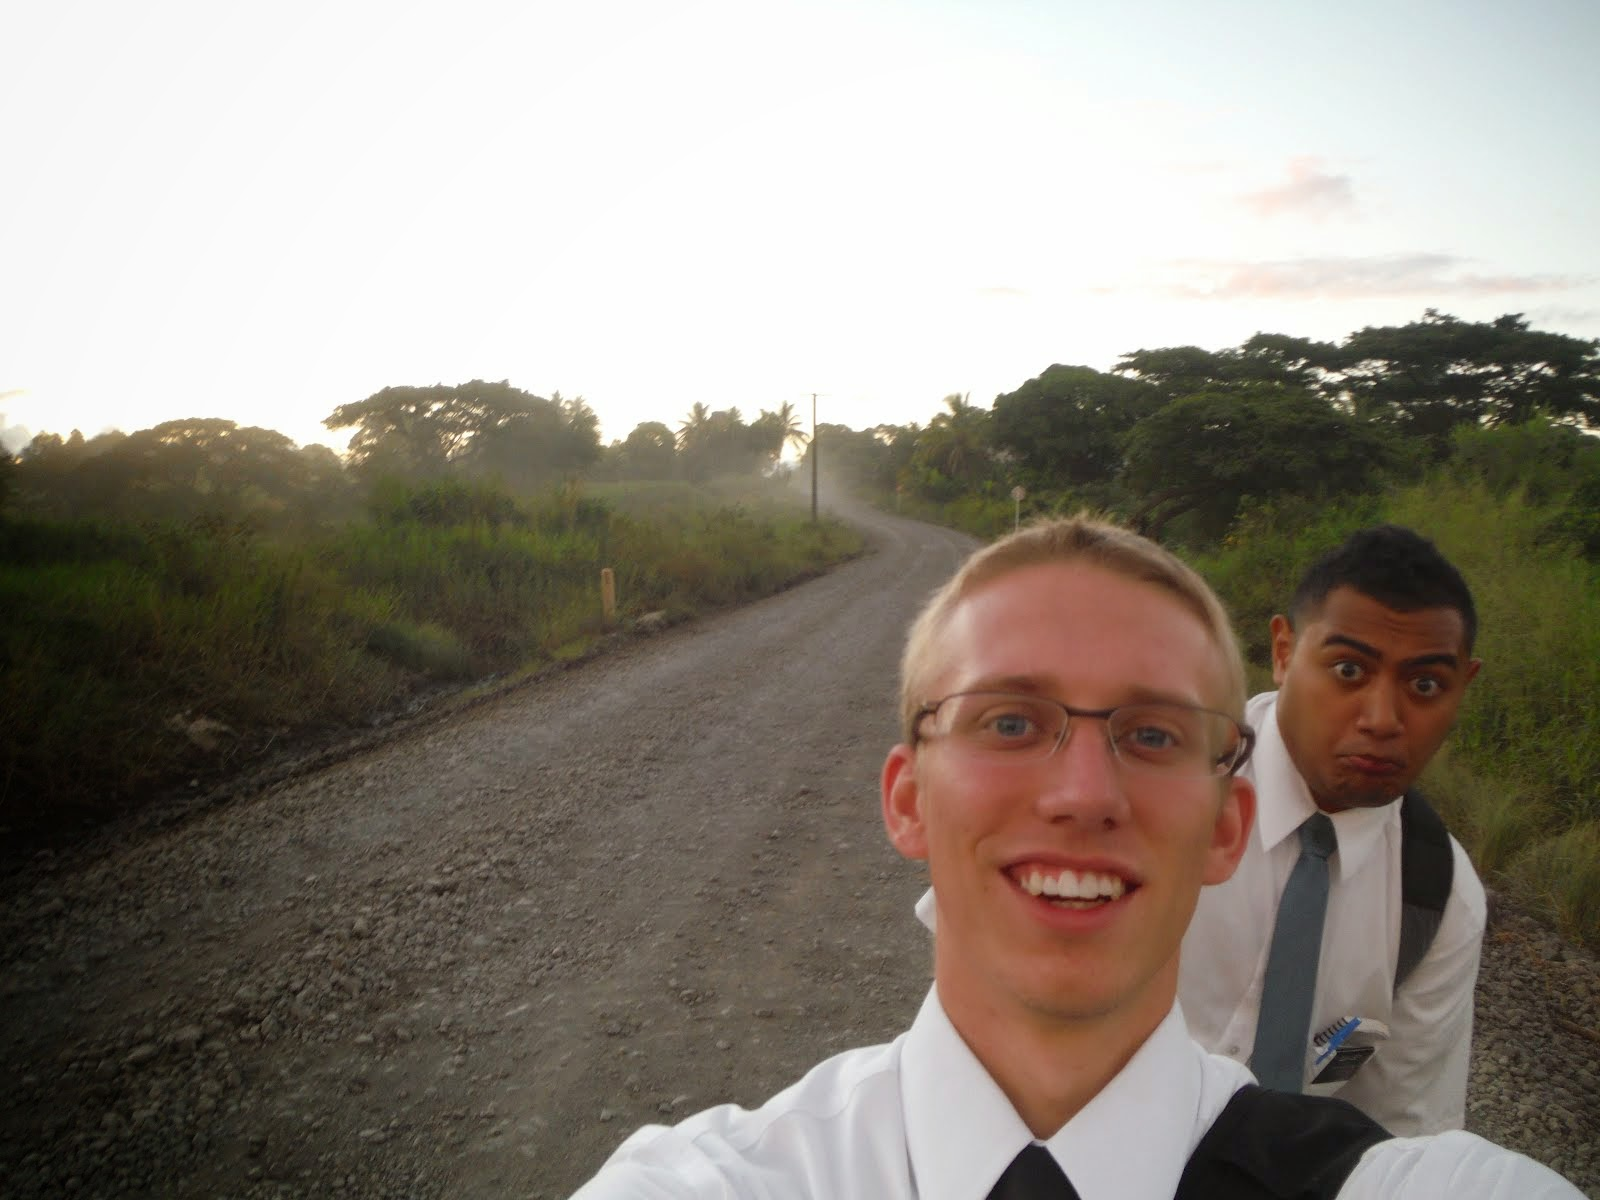 Elder Beilman and Elder Leota